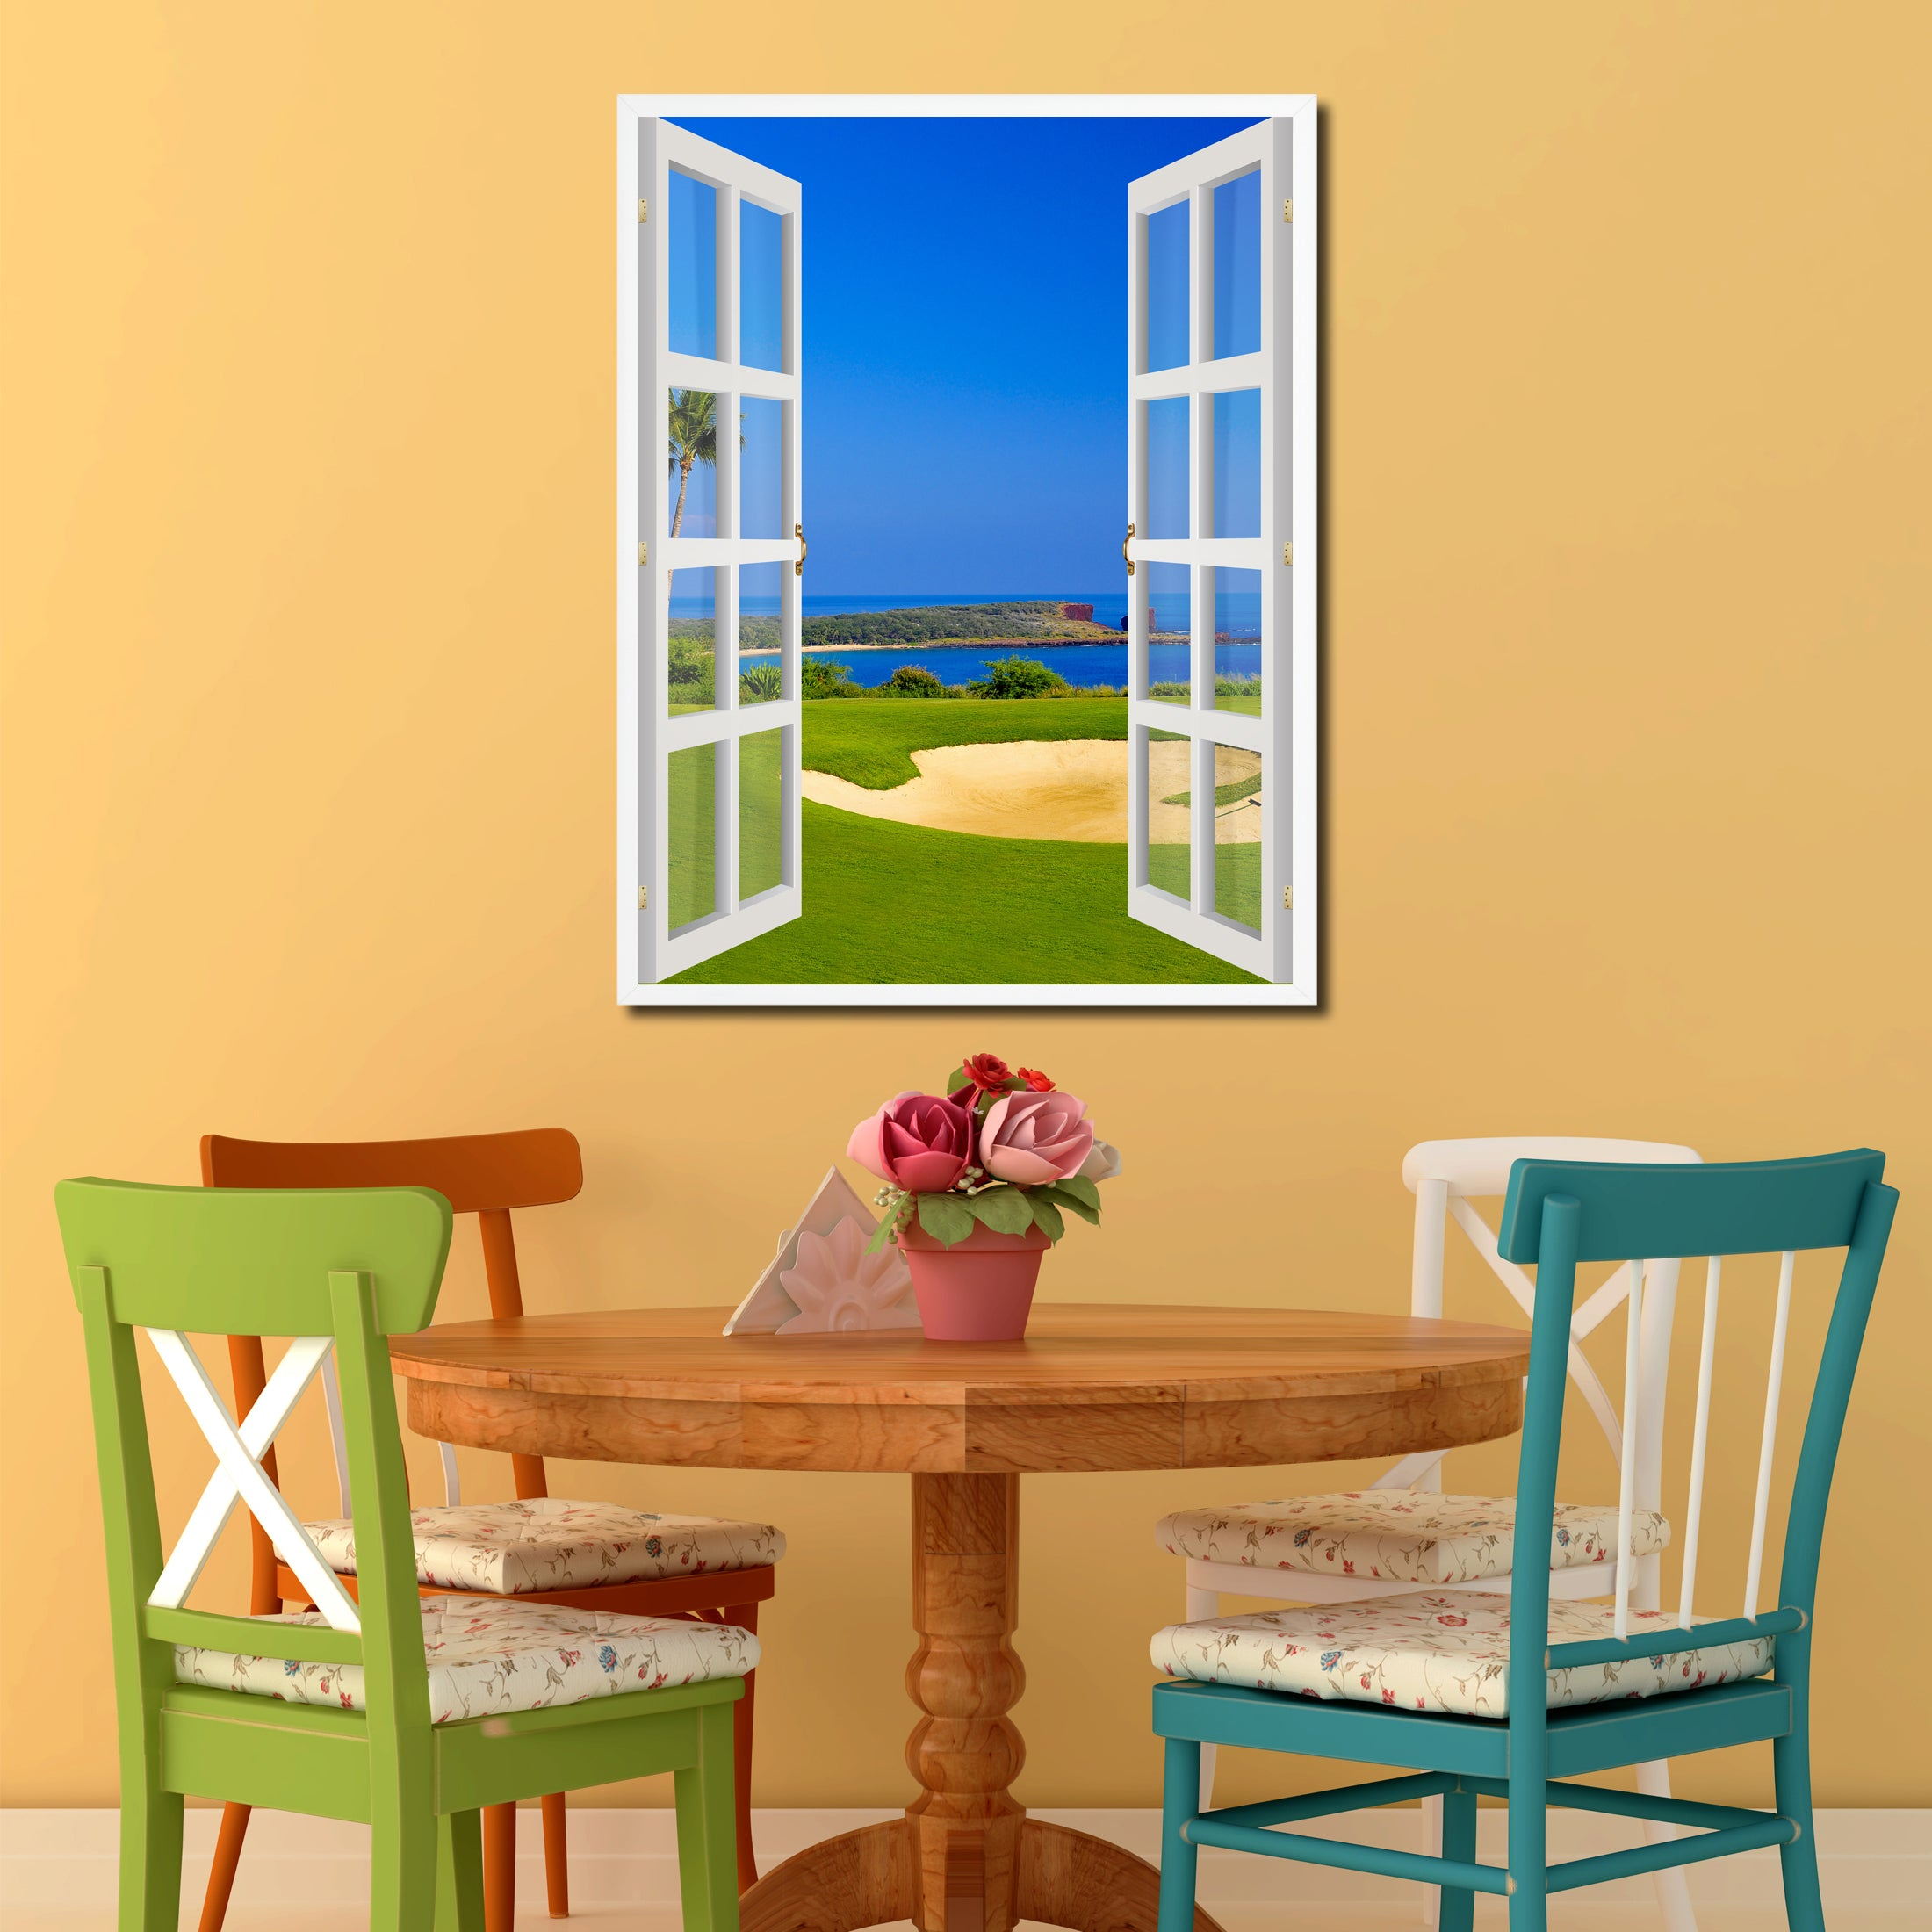 Coastal Golf Course Picture French Window Canvas Print with Frame Gifts Home Decor Wall Art Collection